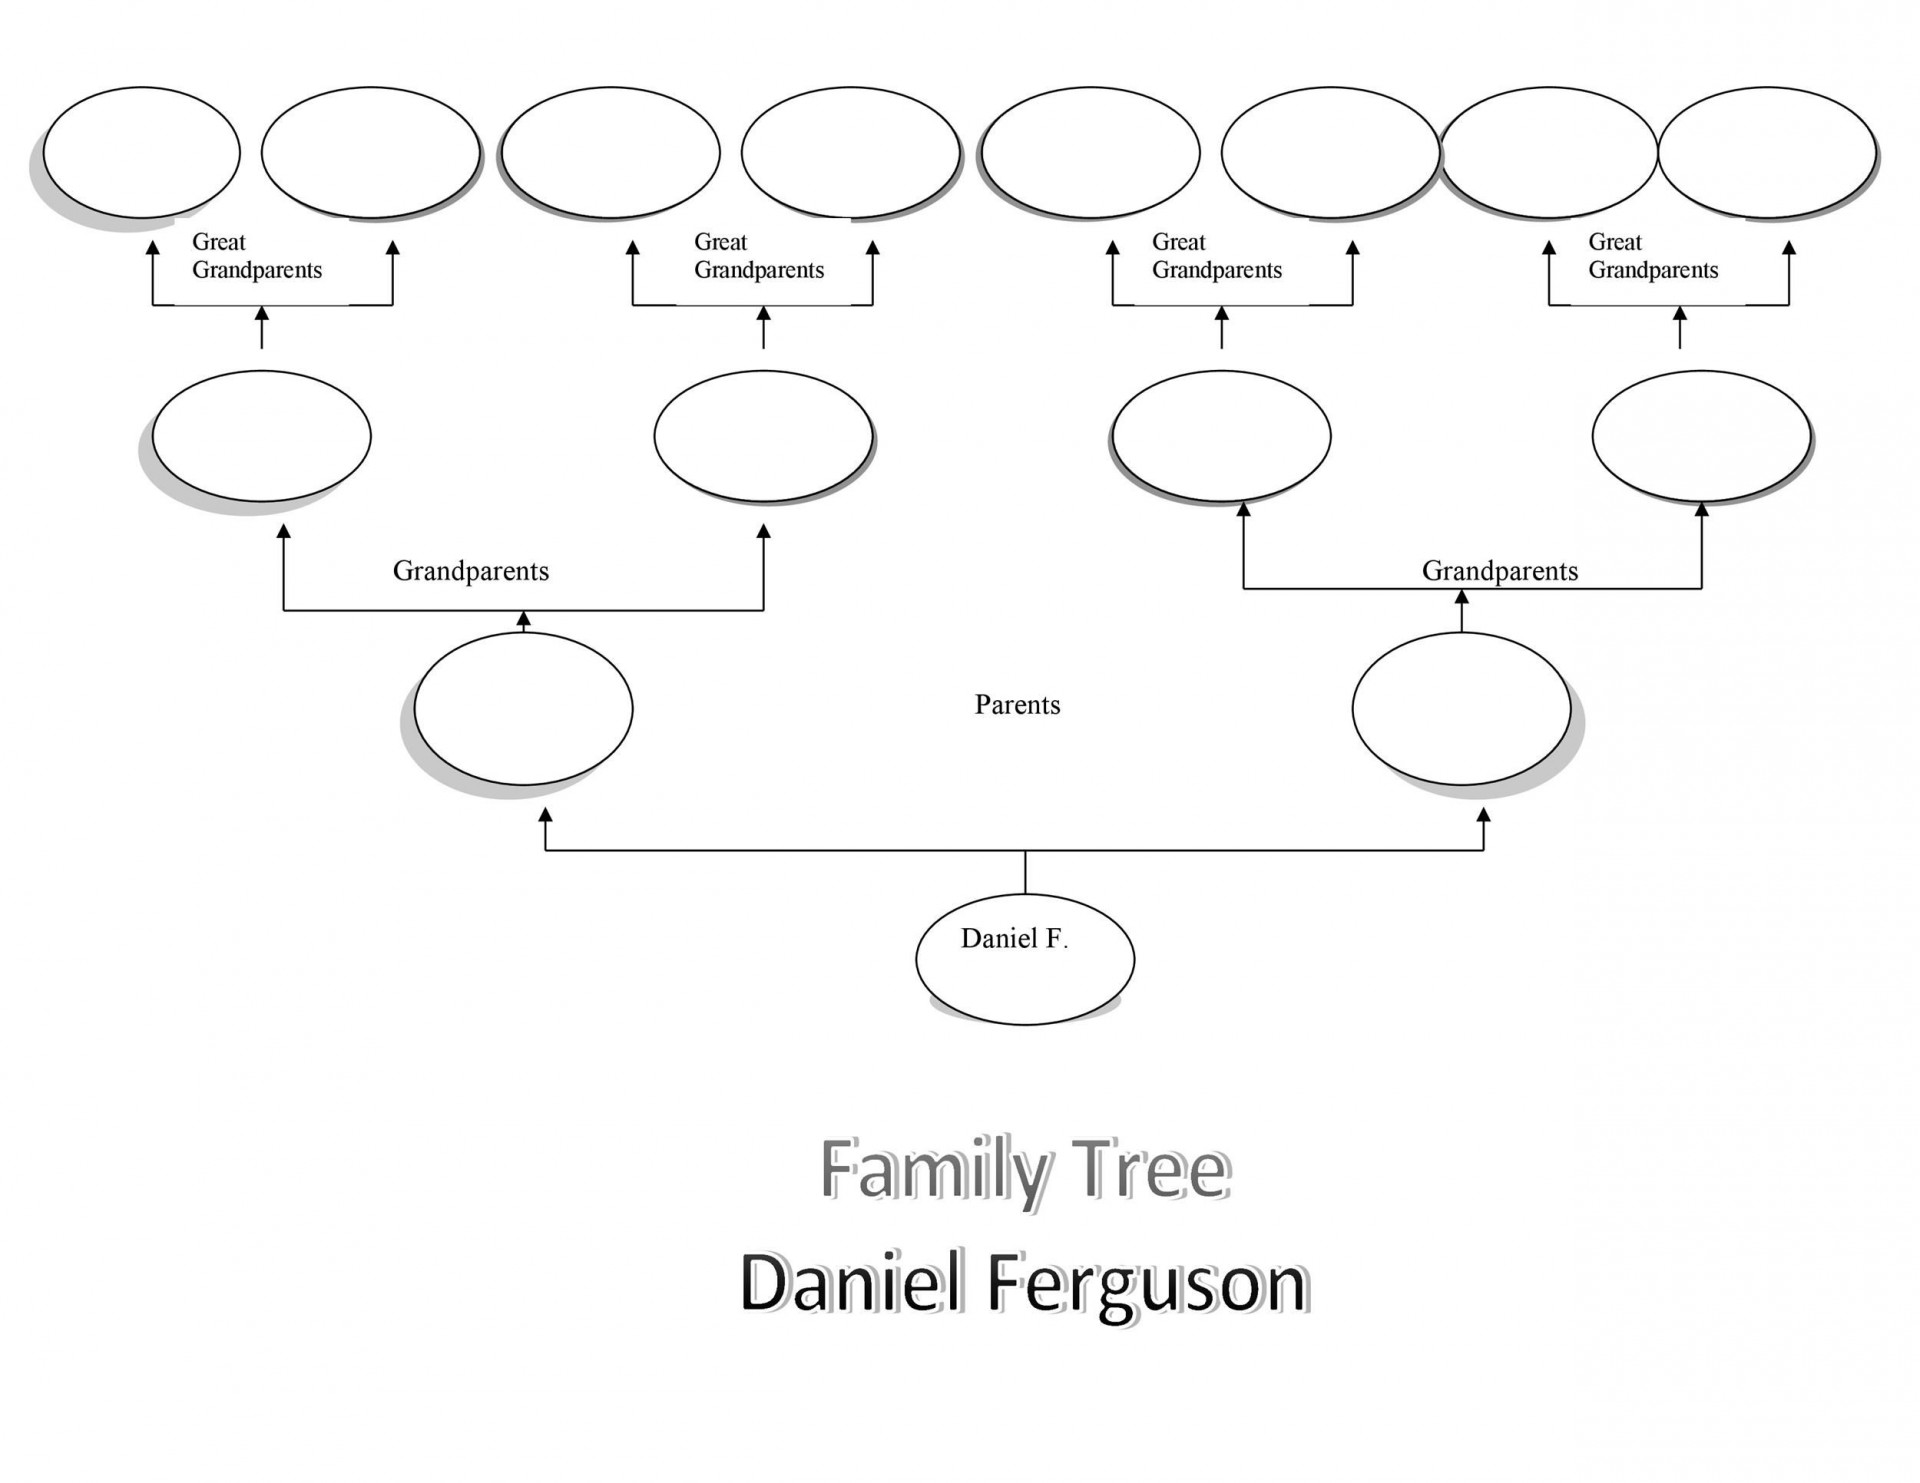 006 Sensational Family Tree Template Online Highest Clarity  Free Maker Excel1920